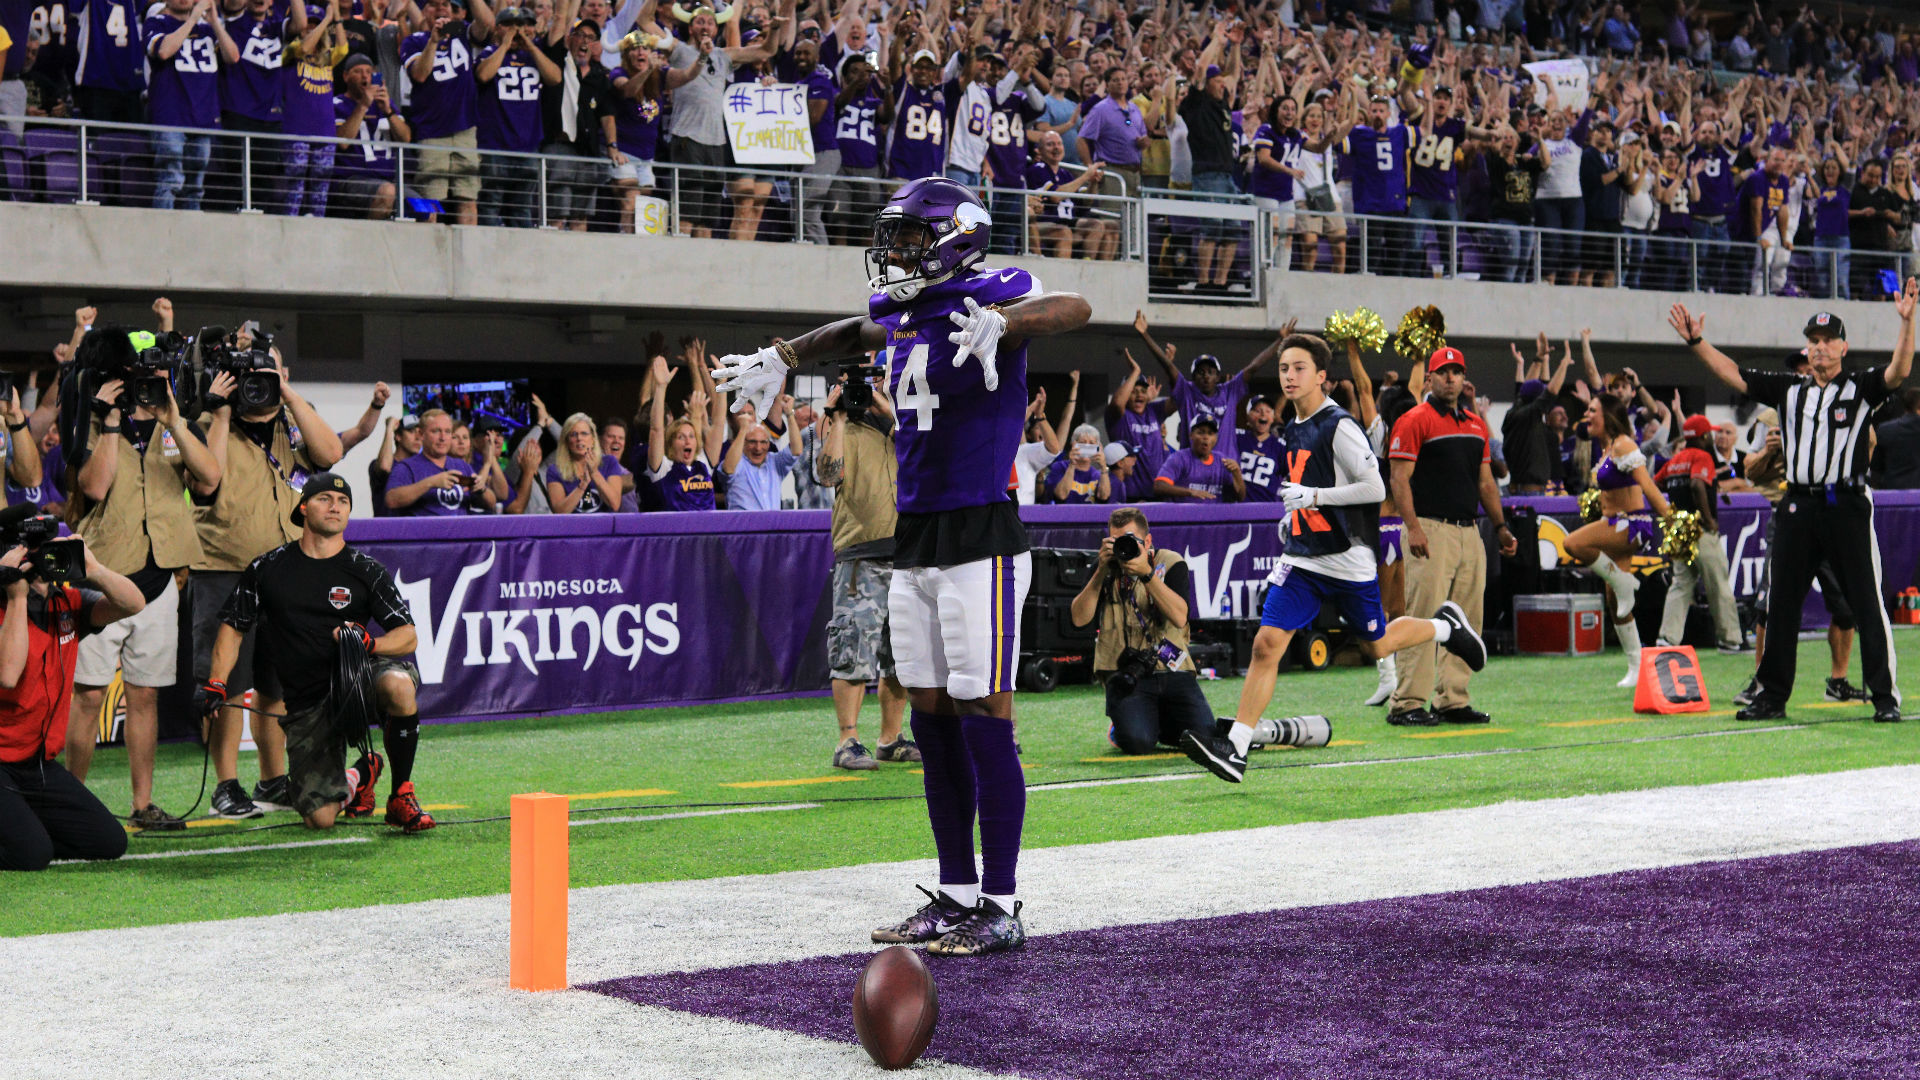 If Vikings win big in 2017 remember the spark Stefon Diggs